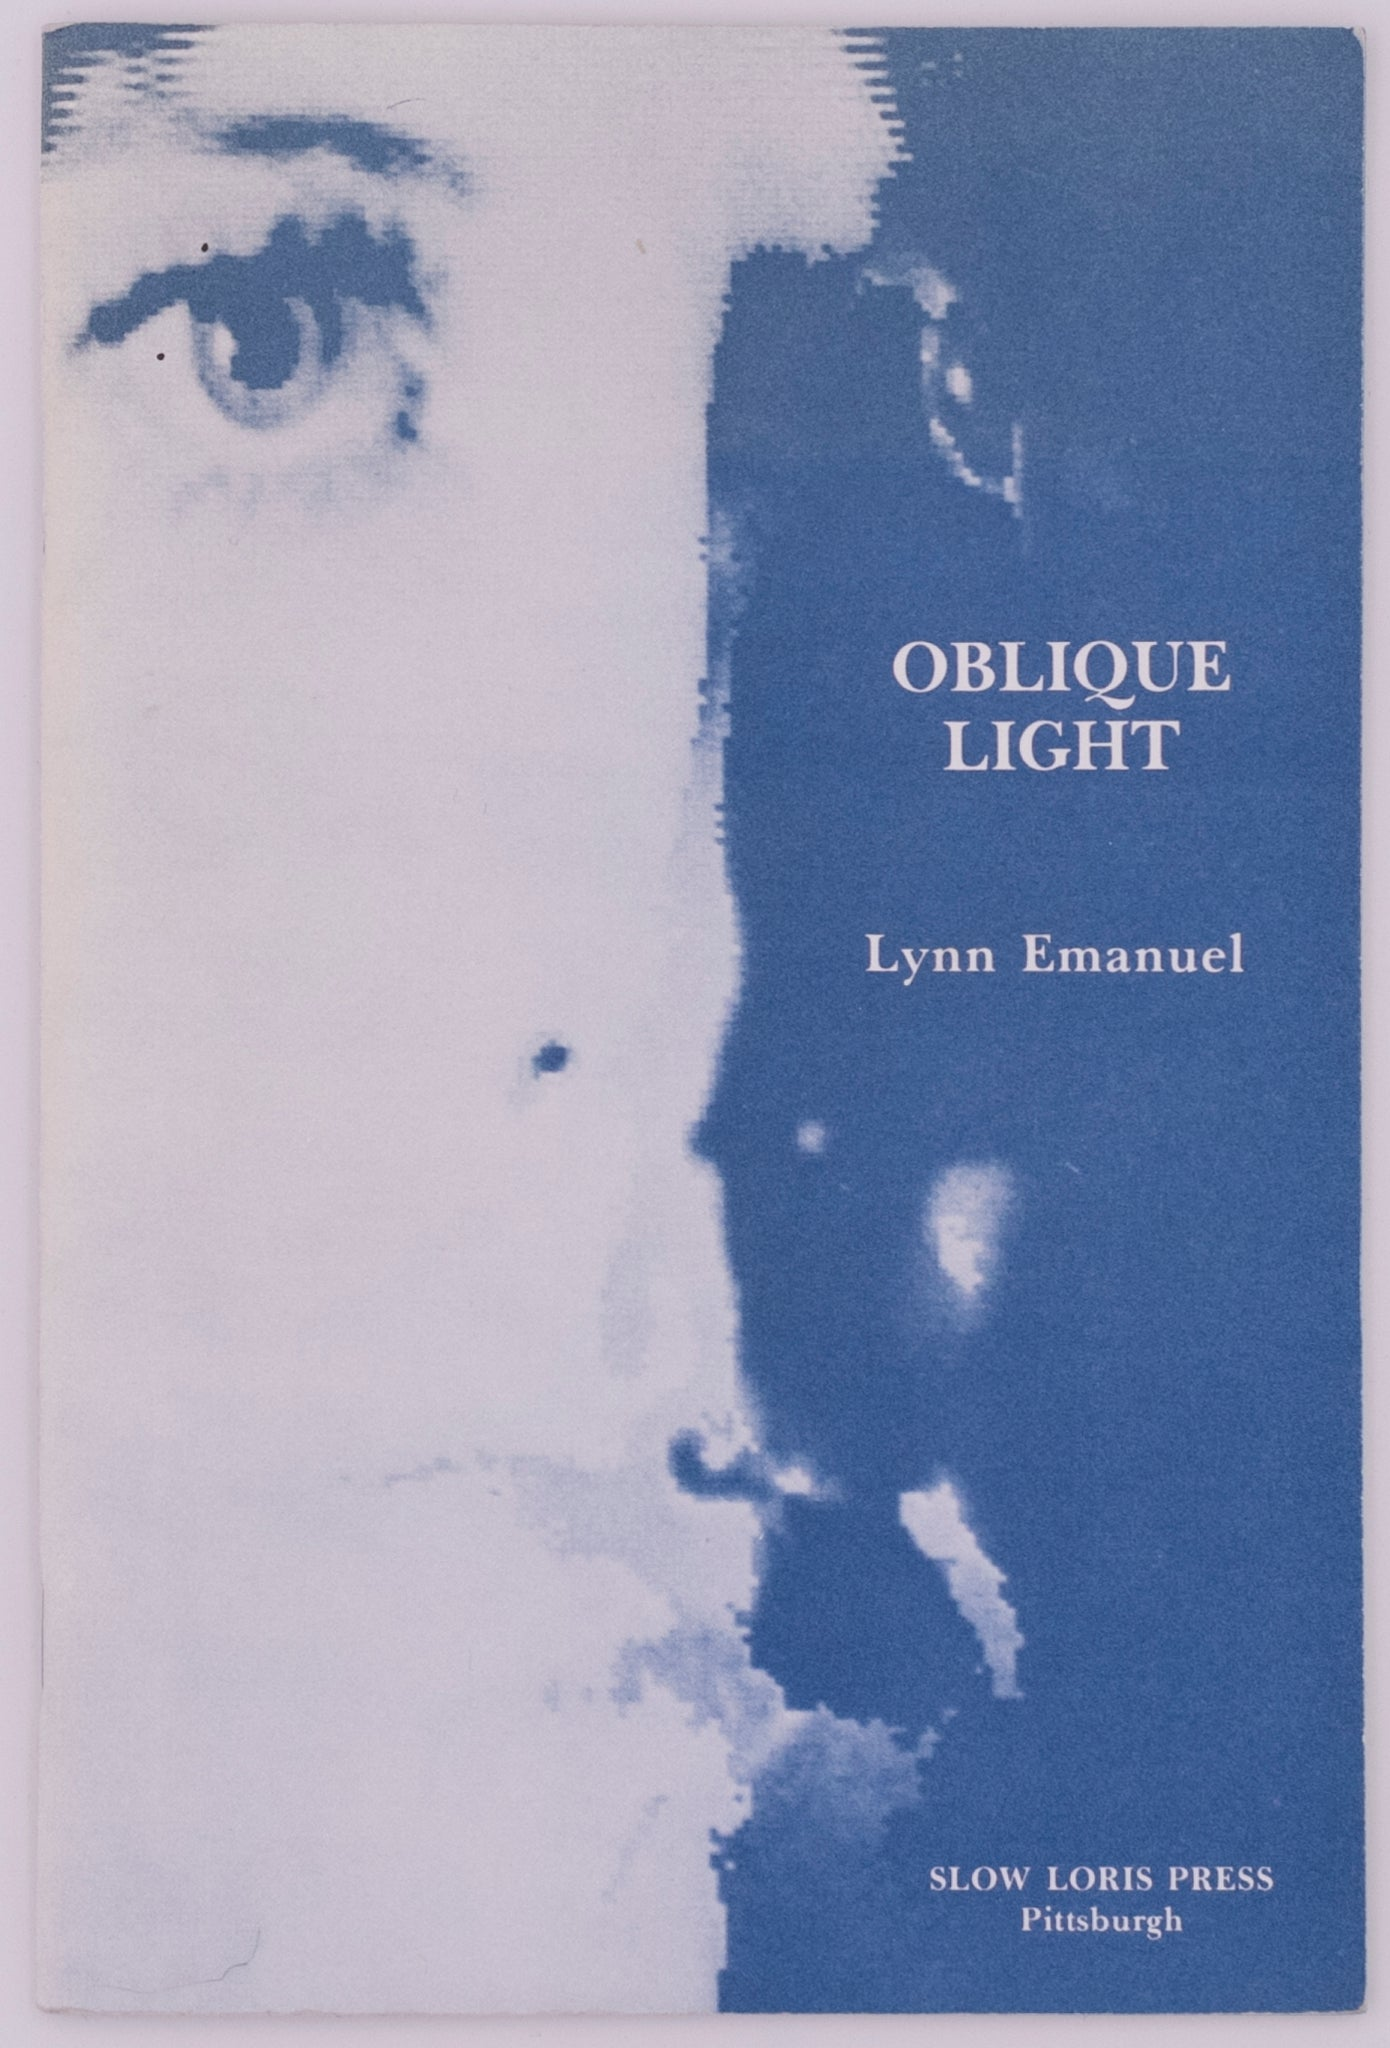 Oblique Light